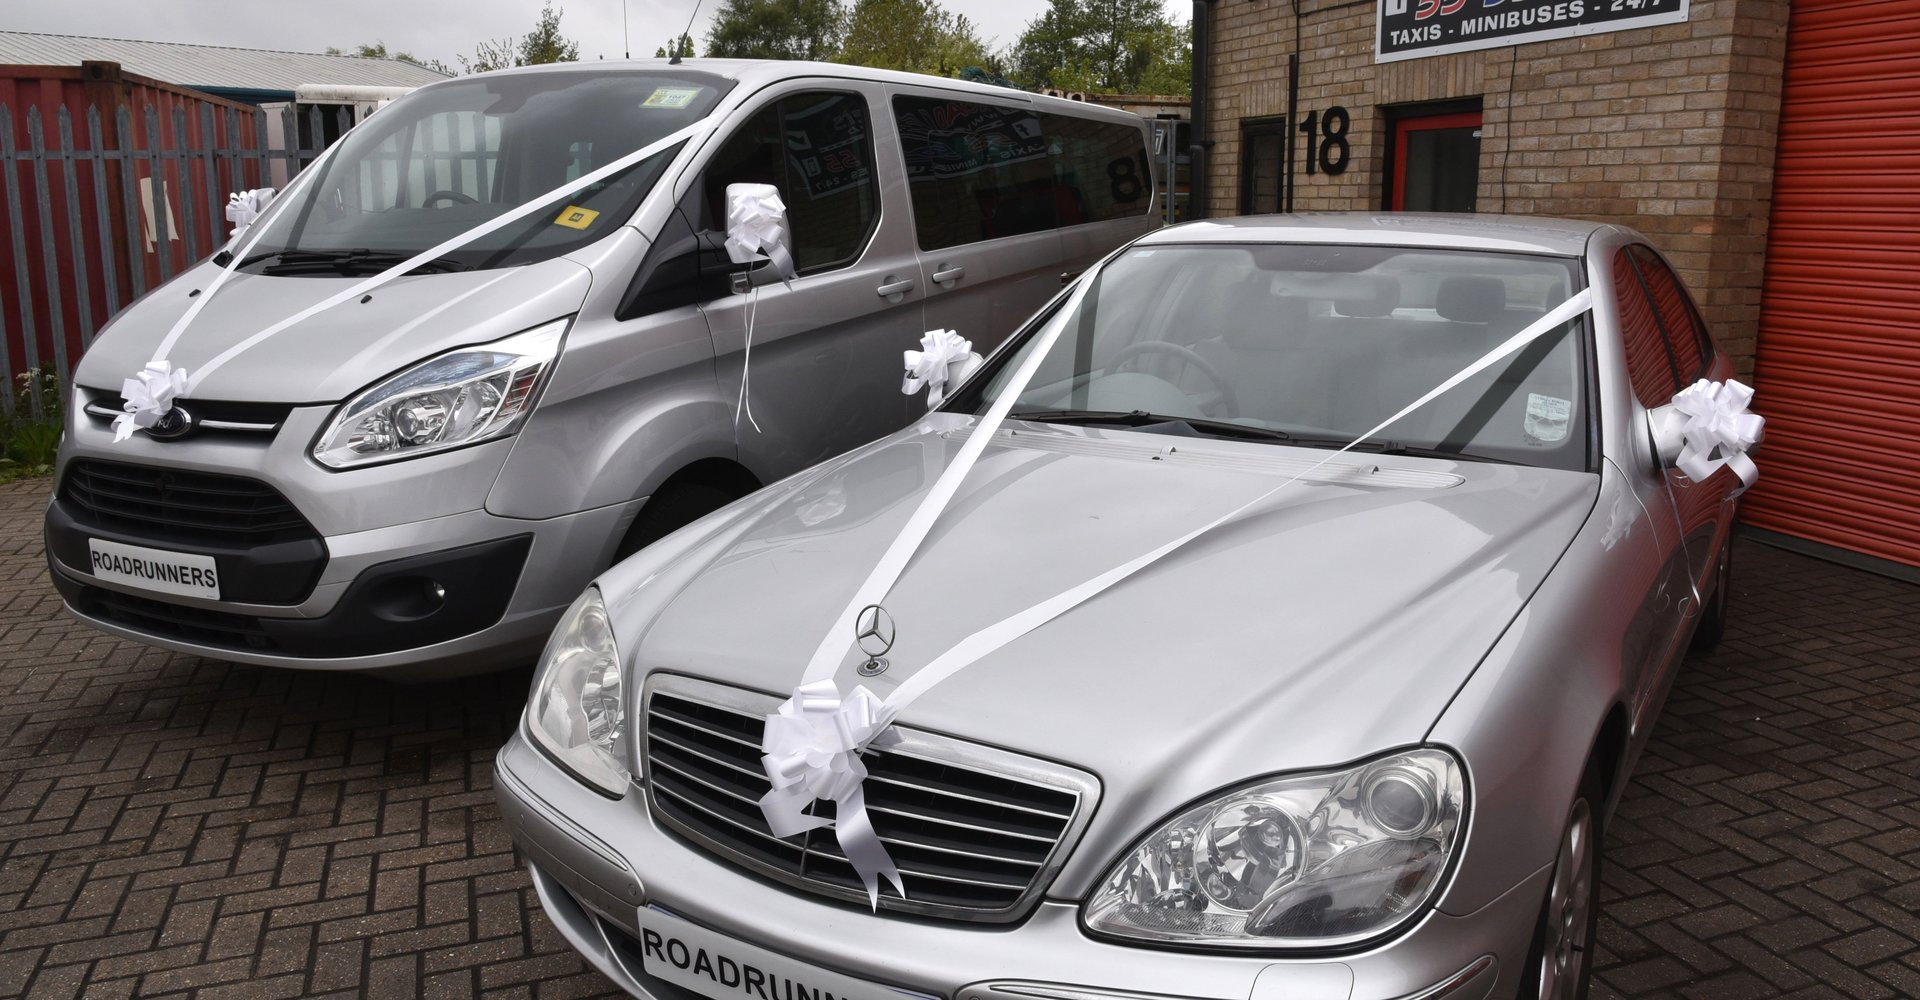 Wedding car hire in Lowestoft | RoadRunners Taxis